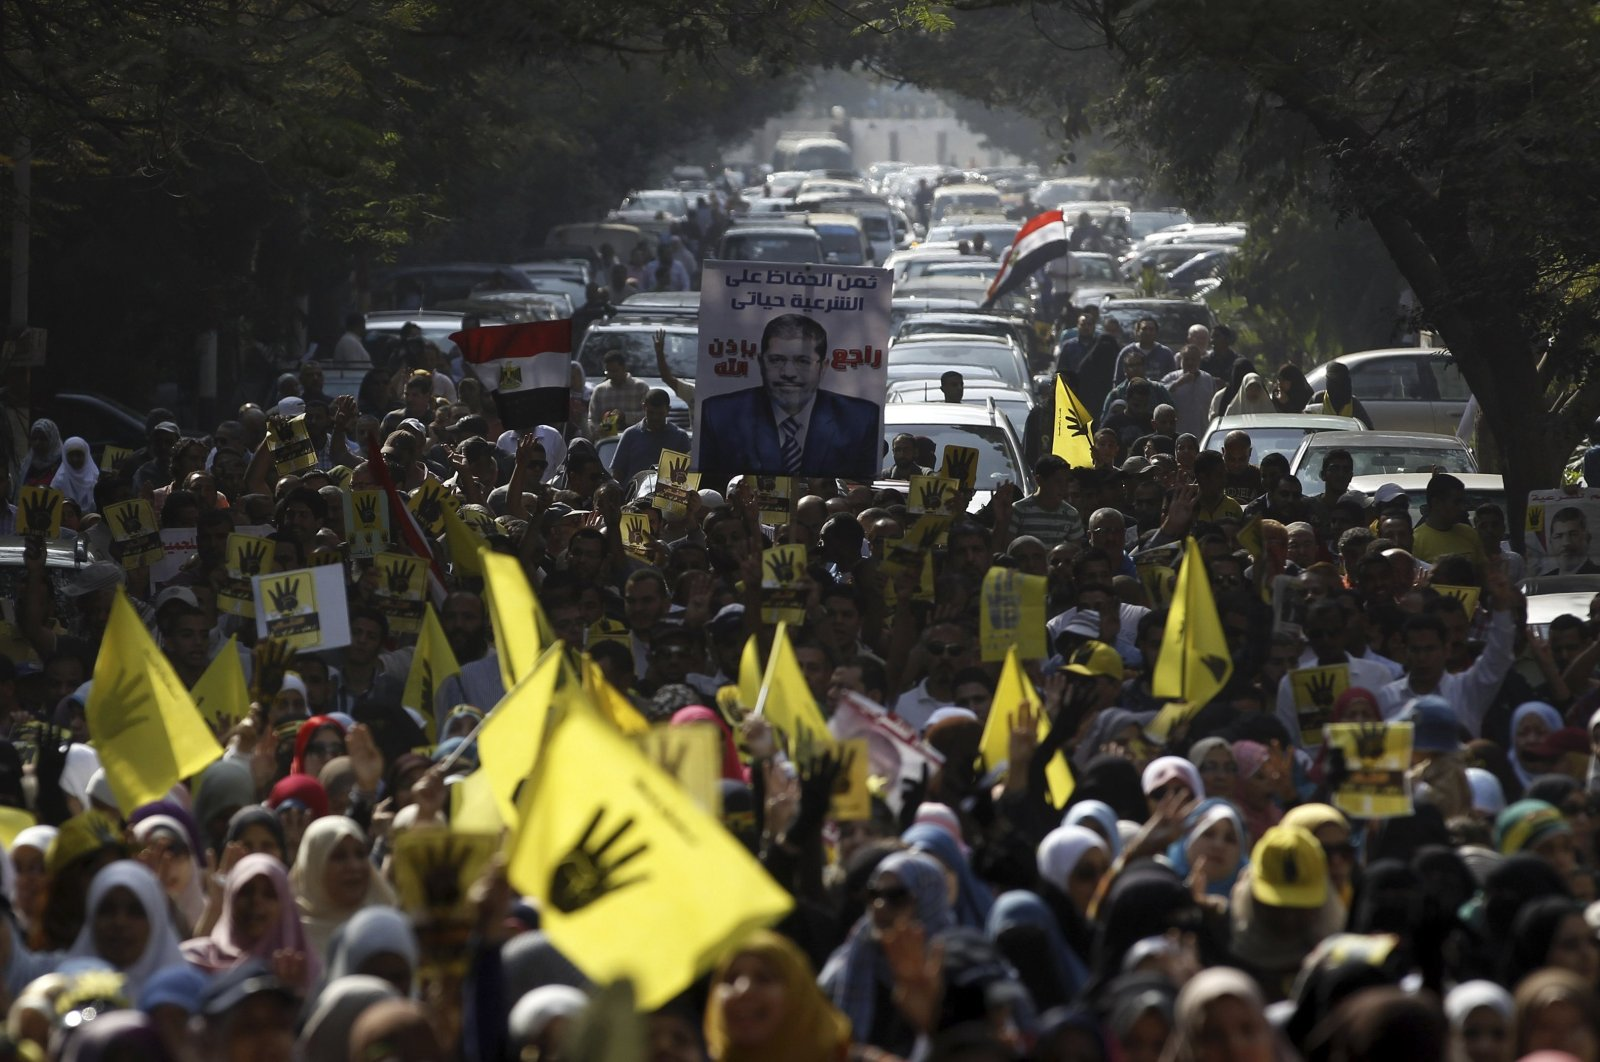 Supporters of the Muslim Brotherhood and Egyptian Mohammed Morsi take part in a protest against the military in Cairo November 1, 2013. (Reuters Photo)